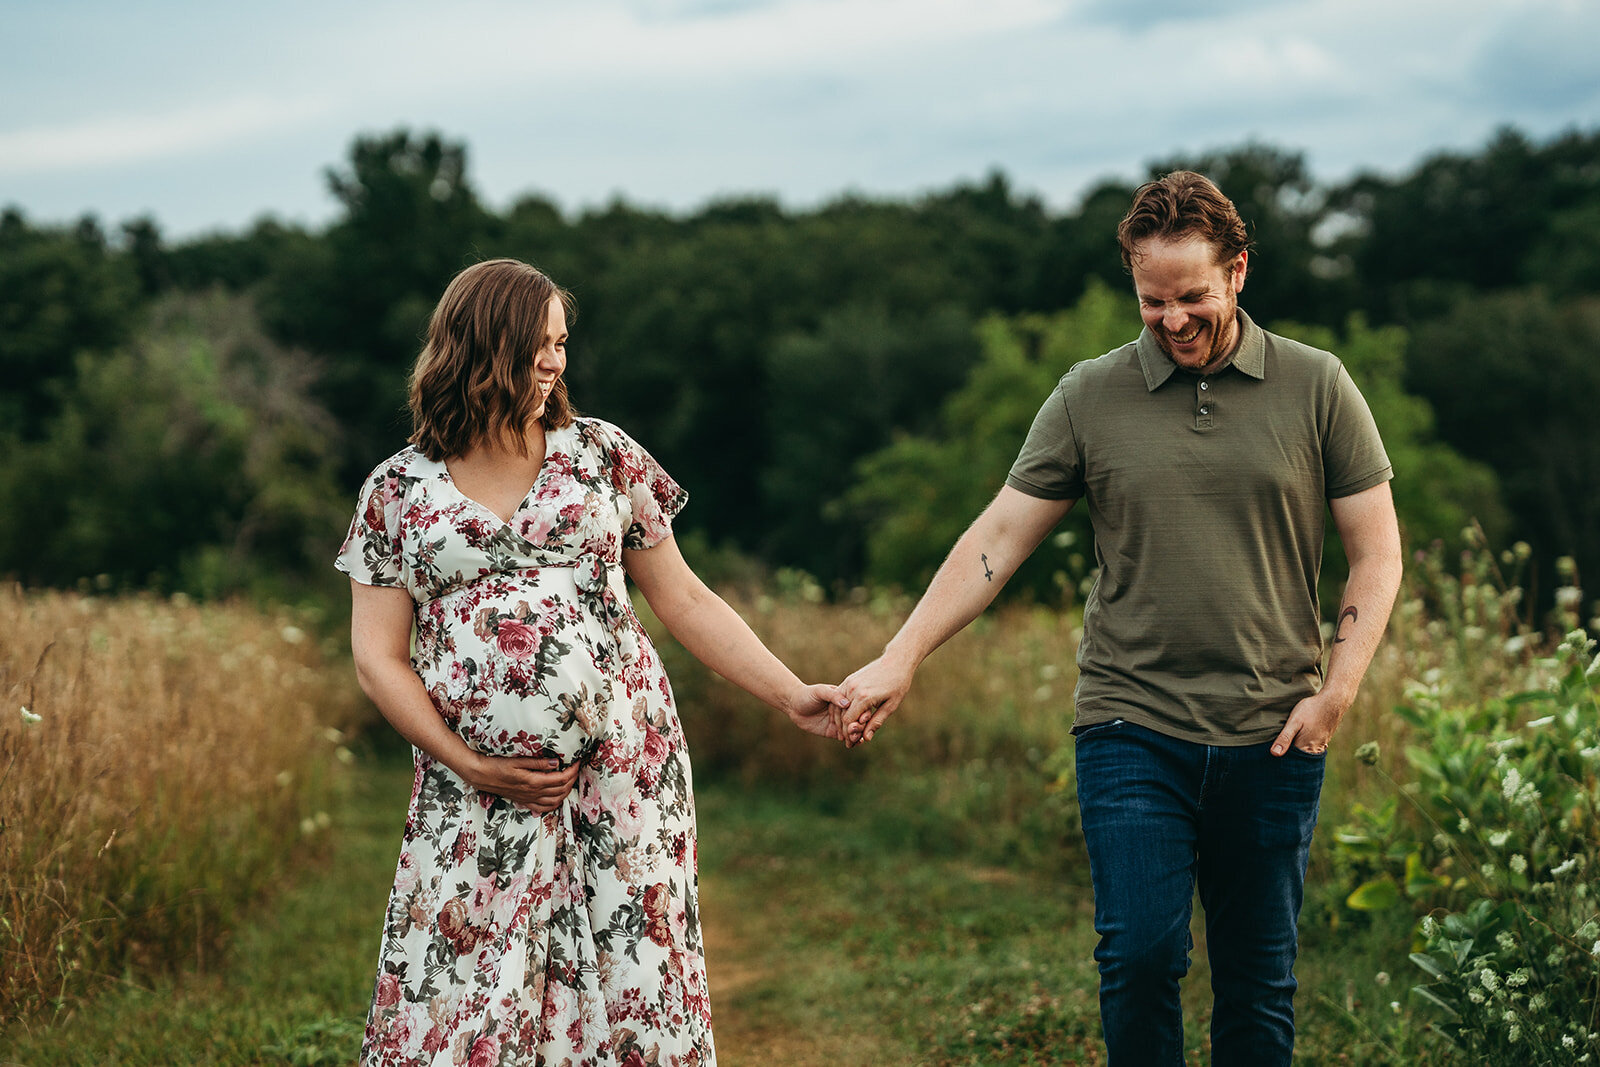 pregnant couple holds hands and laughs while walking